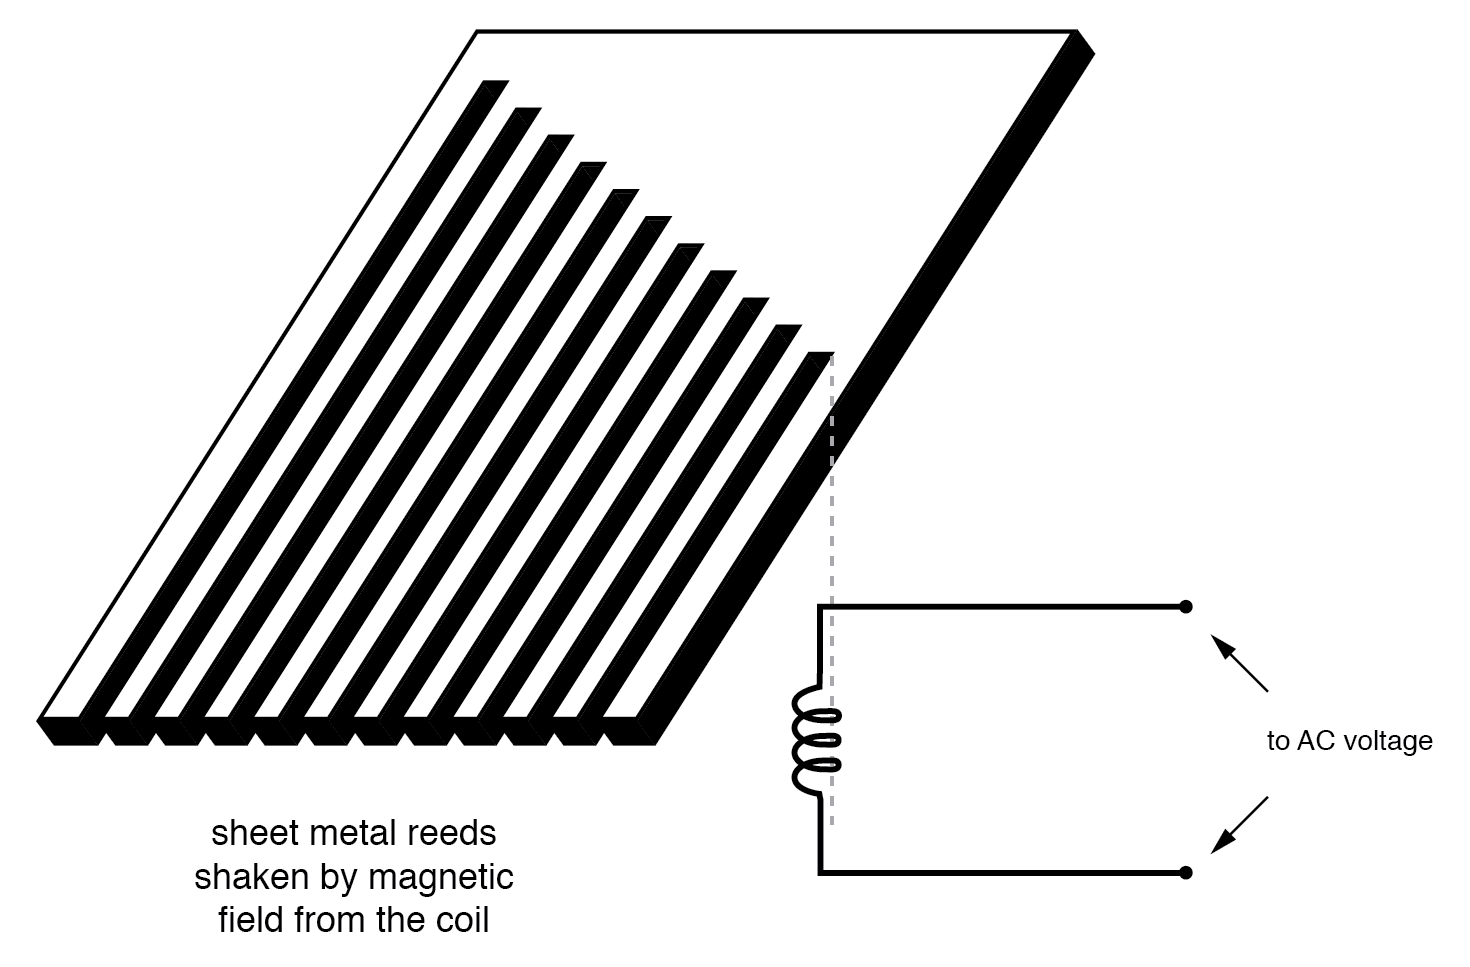 Vibrating reed frequency meter diagram.